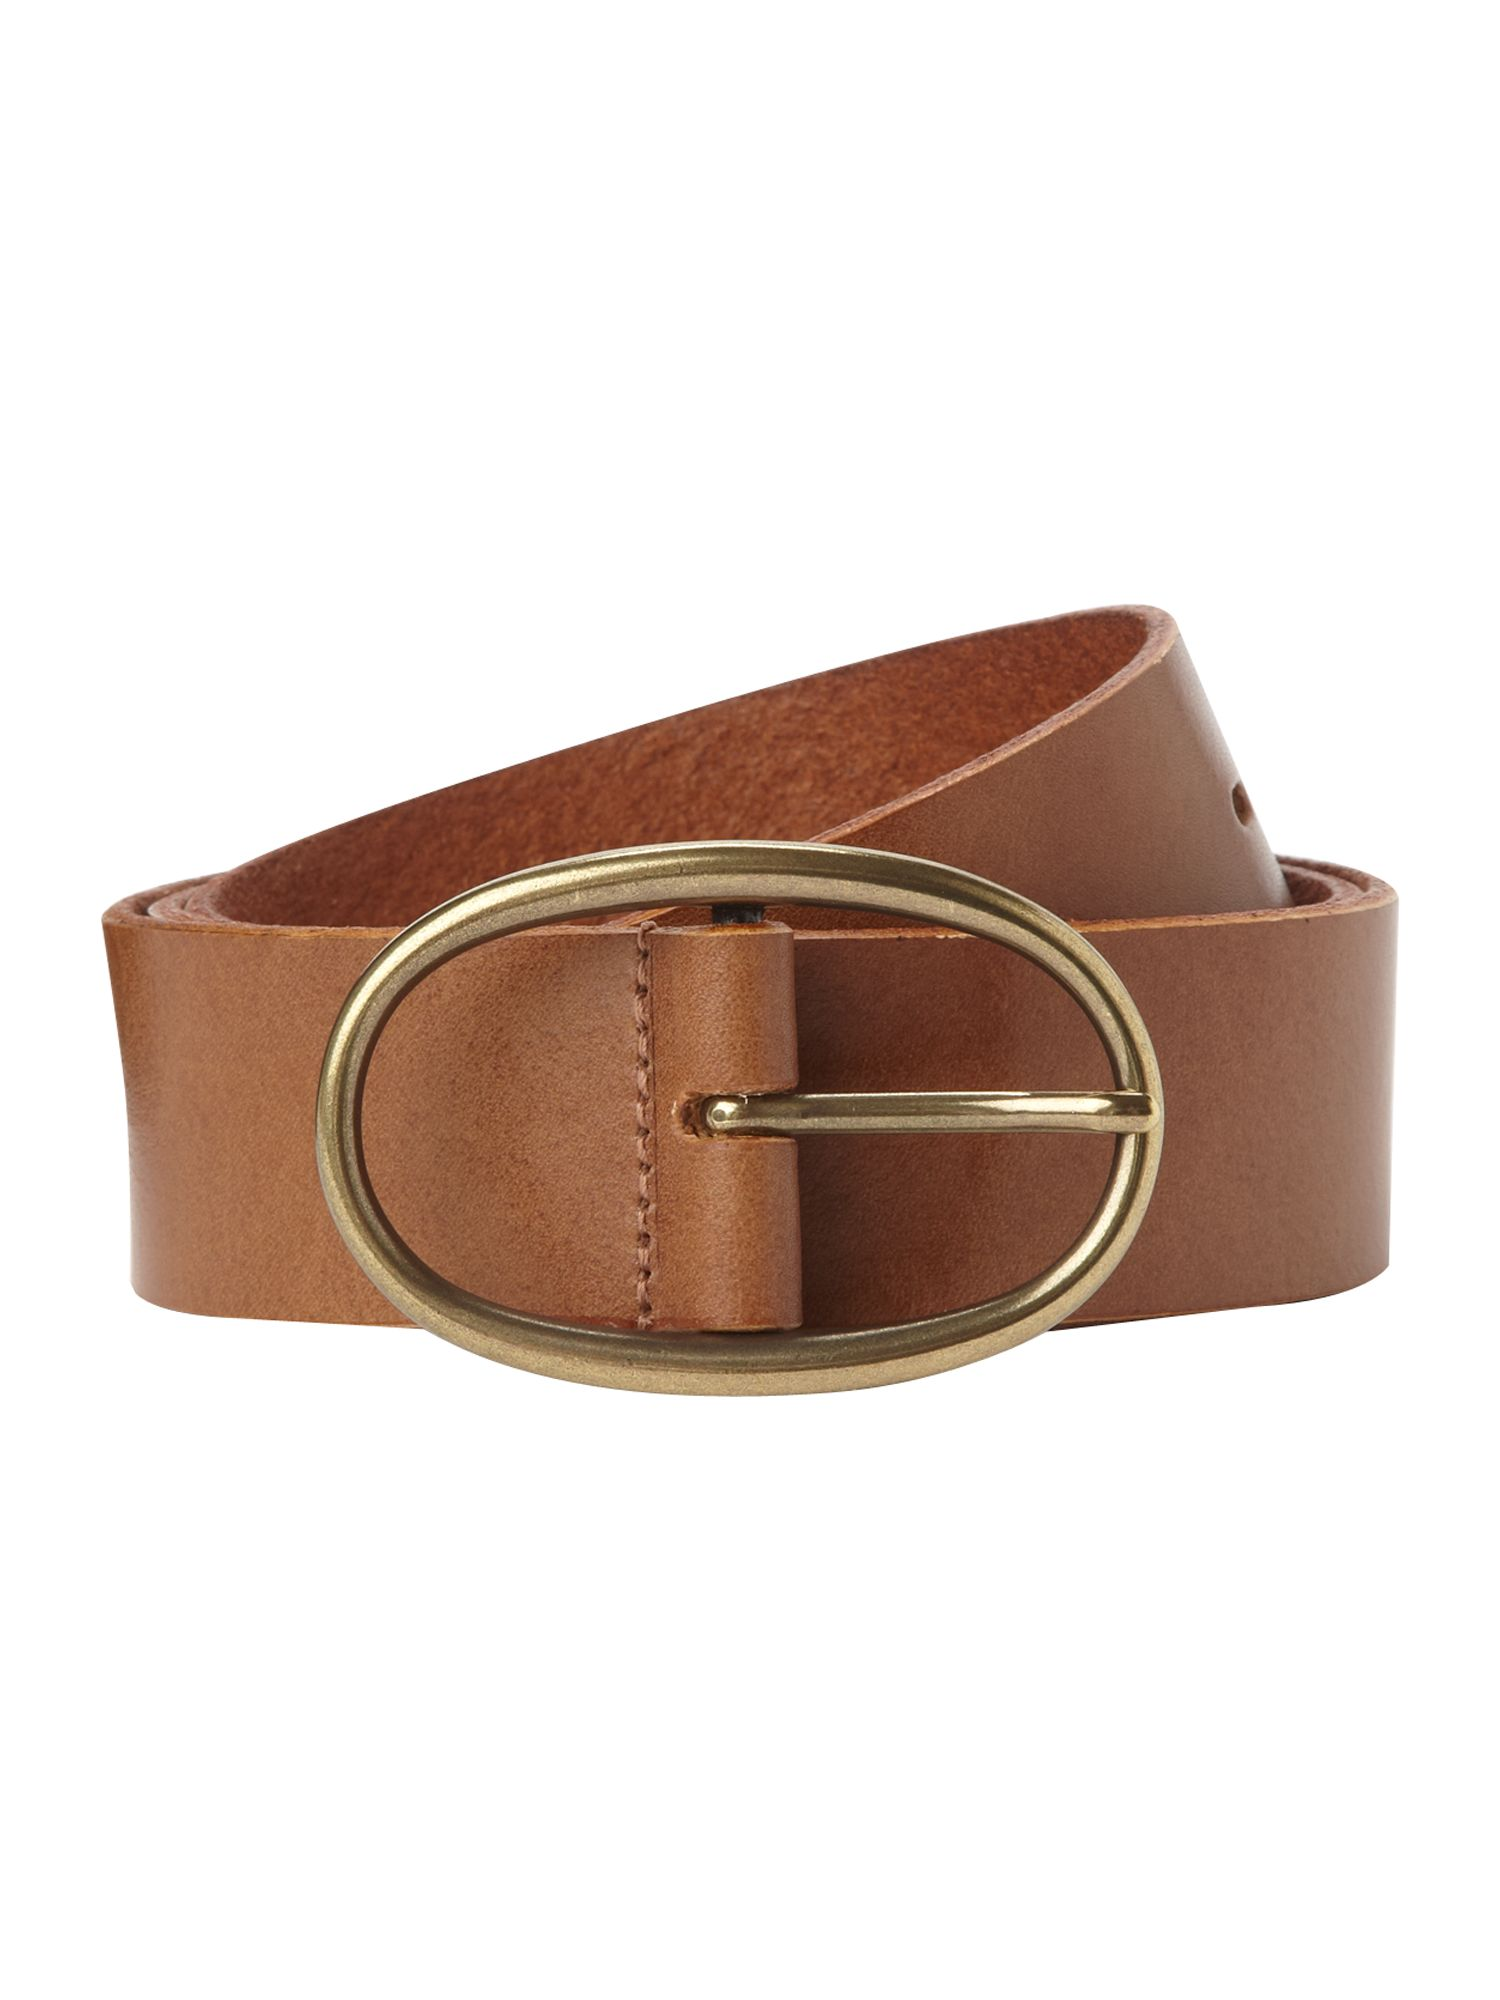 Women`s casual leather belt